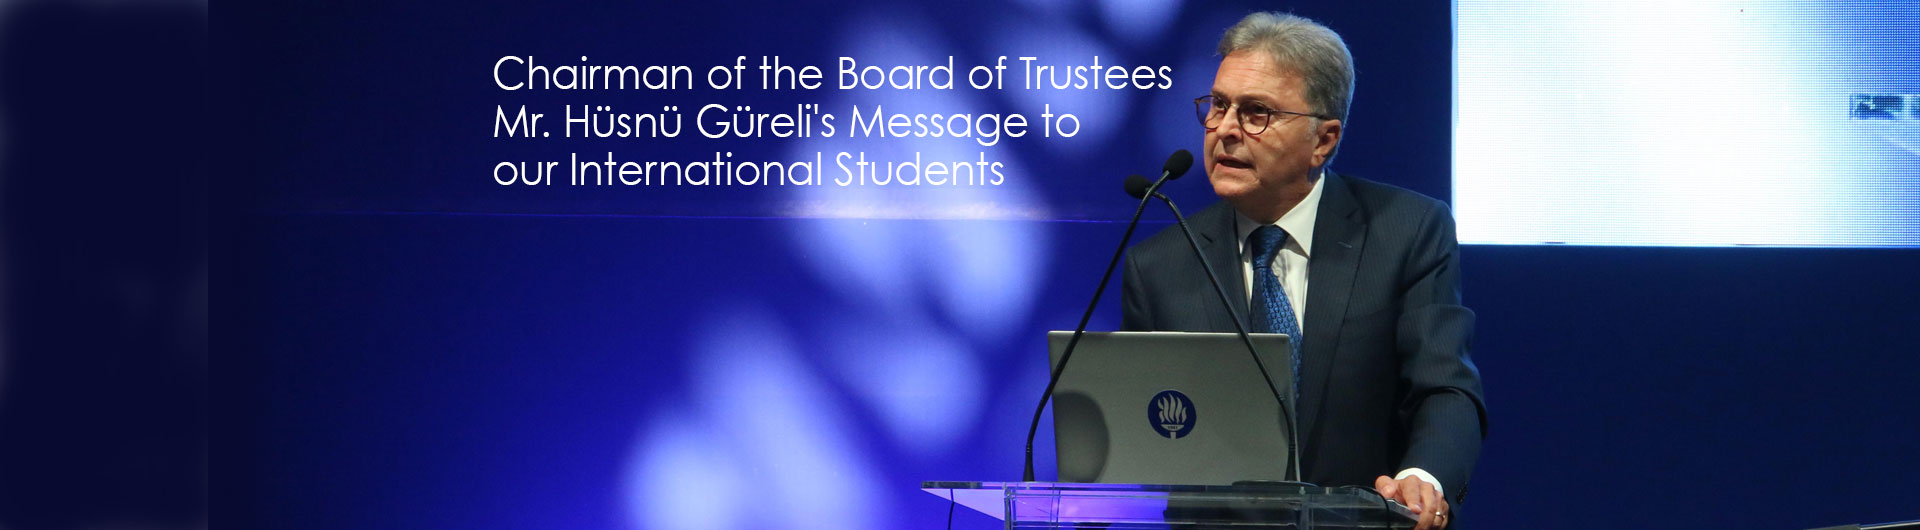 Chairman of the Board of Trustees Mr. Hüsnü Güreli's Message to our International Students